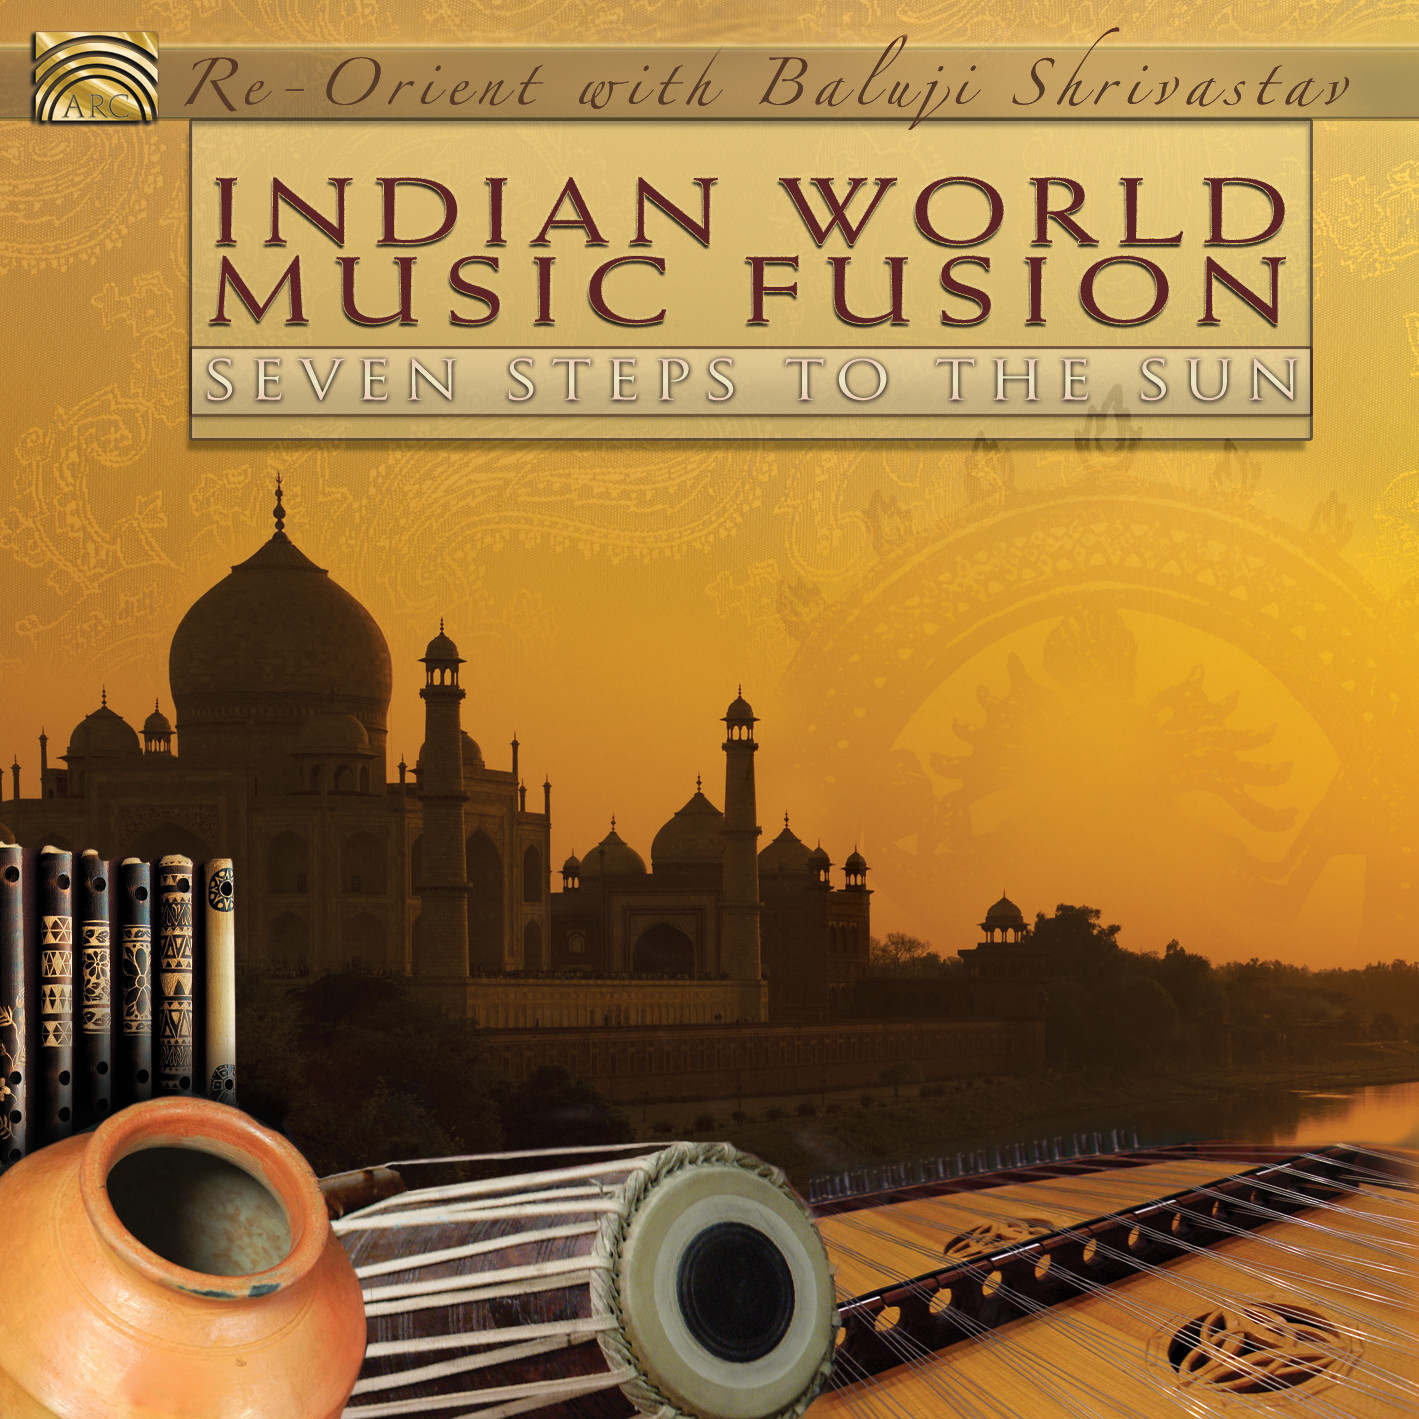 EUCD2412 Indian World Music Fusion - Seven Steps to the Sun